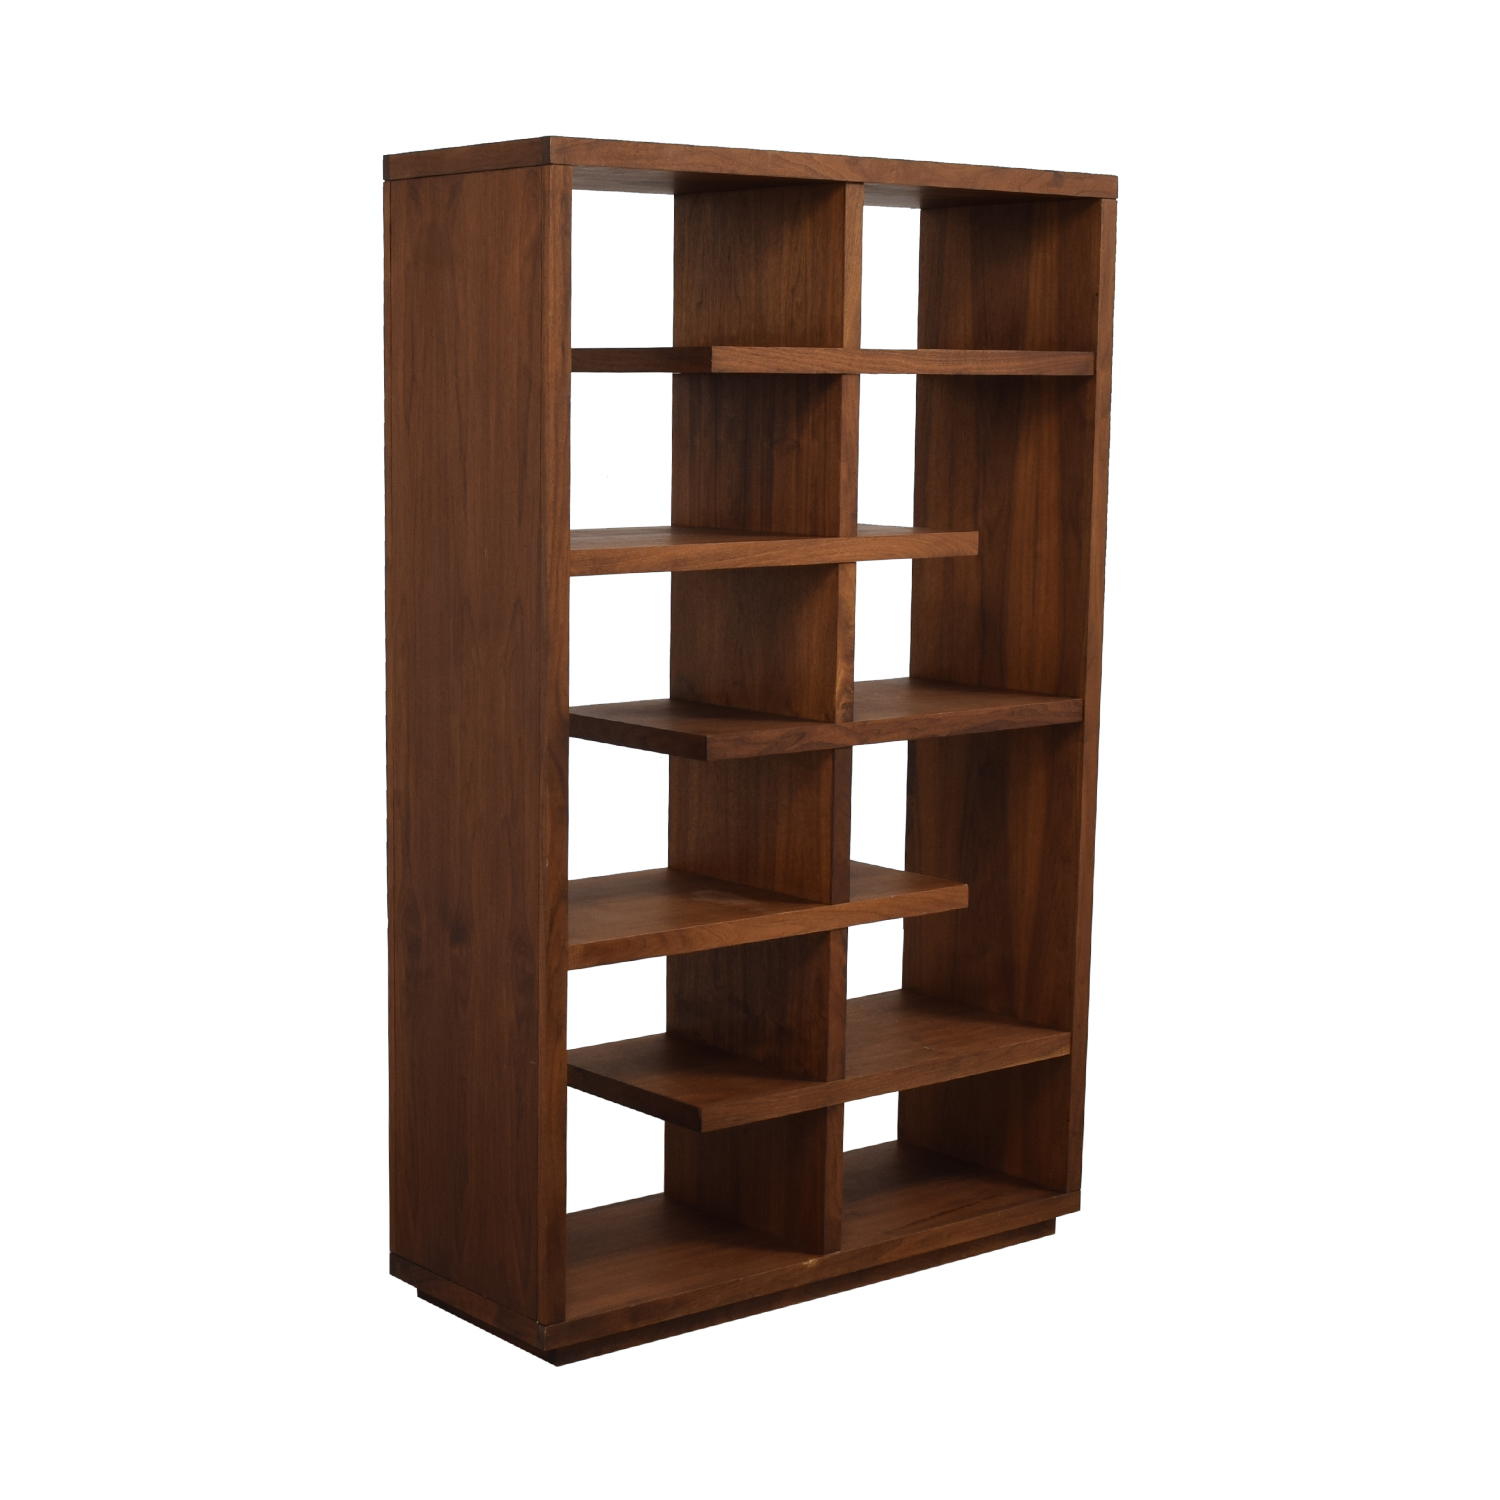 shop Crate & Barrel Crate & Barrel Elevate Walnut Bookcase online